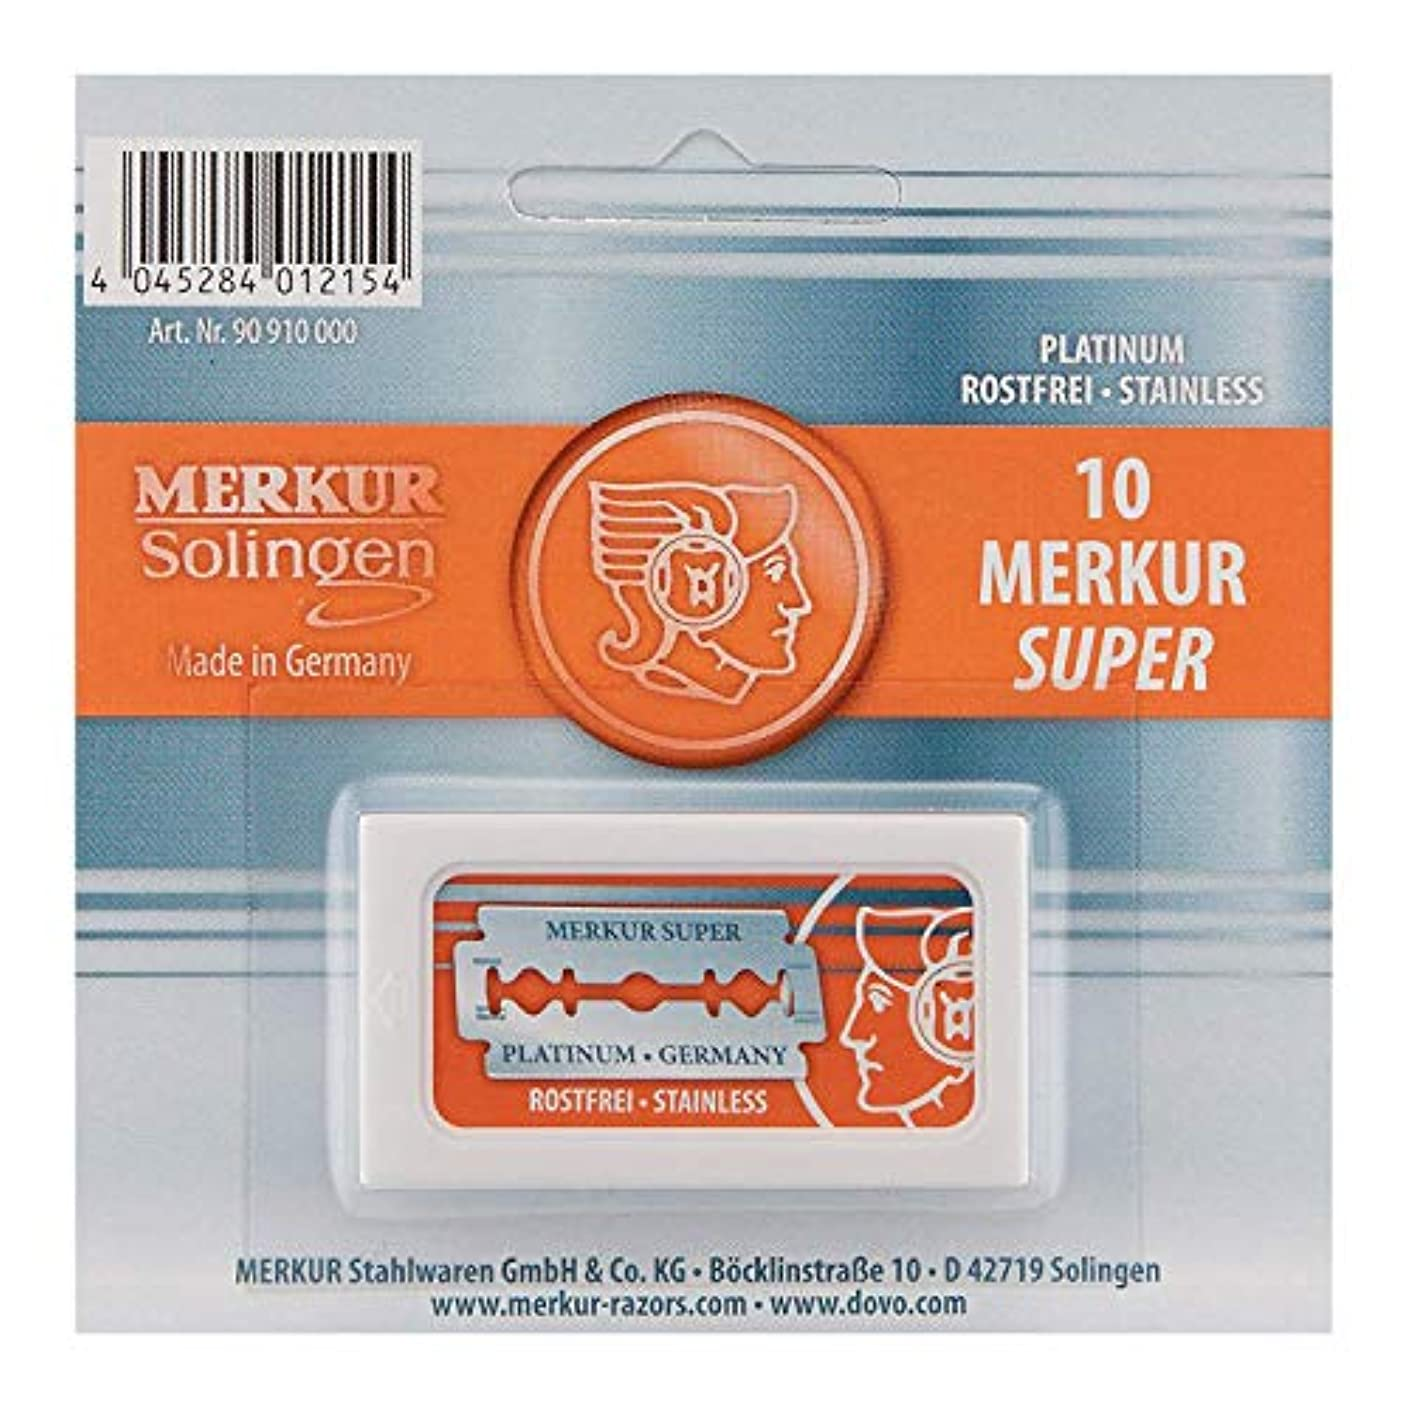 シルク宇宙飛行士薄暗いMerkur Stainless Platinum Safety Razor Blades 10 Pack